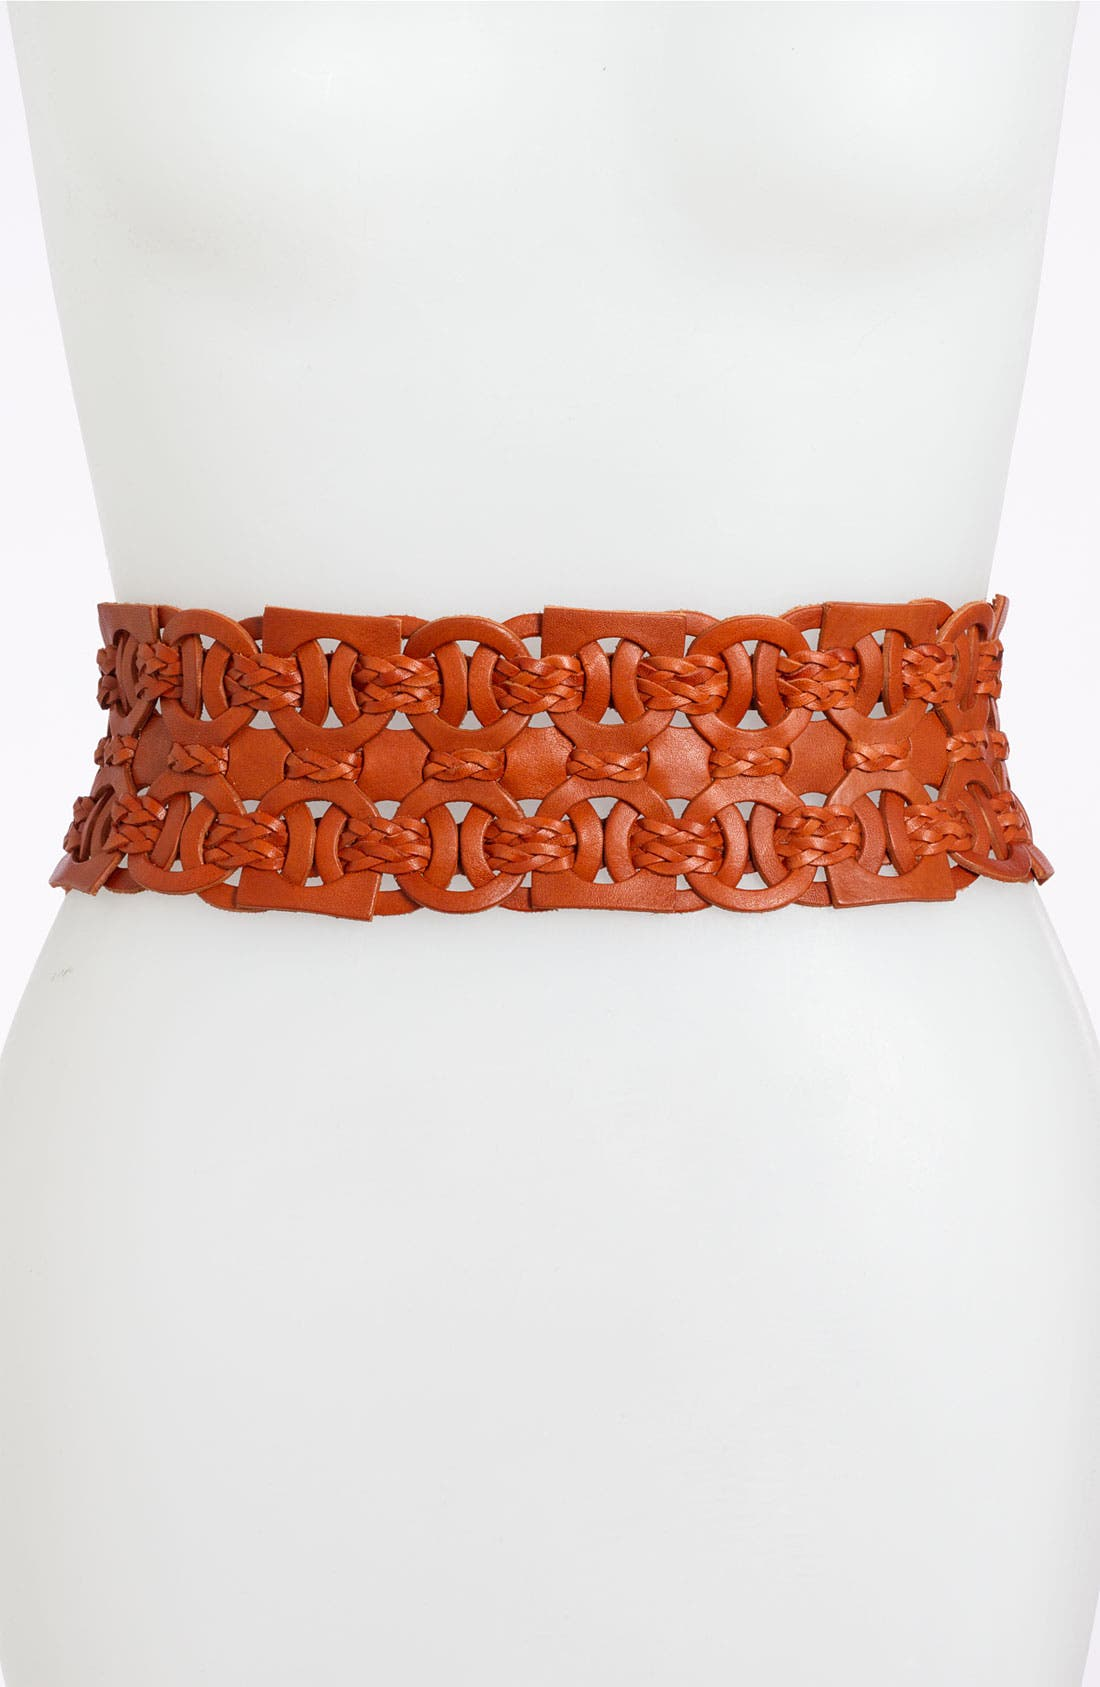 Alternate Image 1 Selected - Fina Firenze Woven Circle Stretch Belt